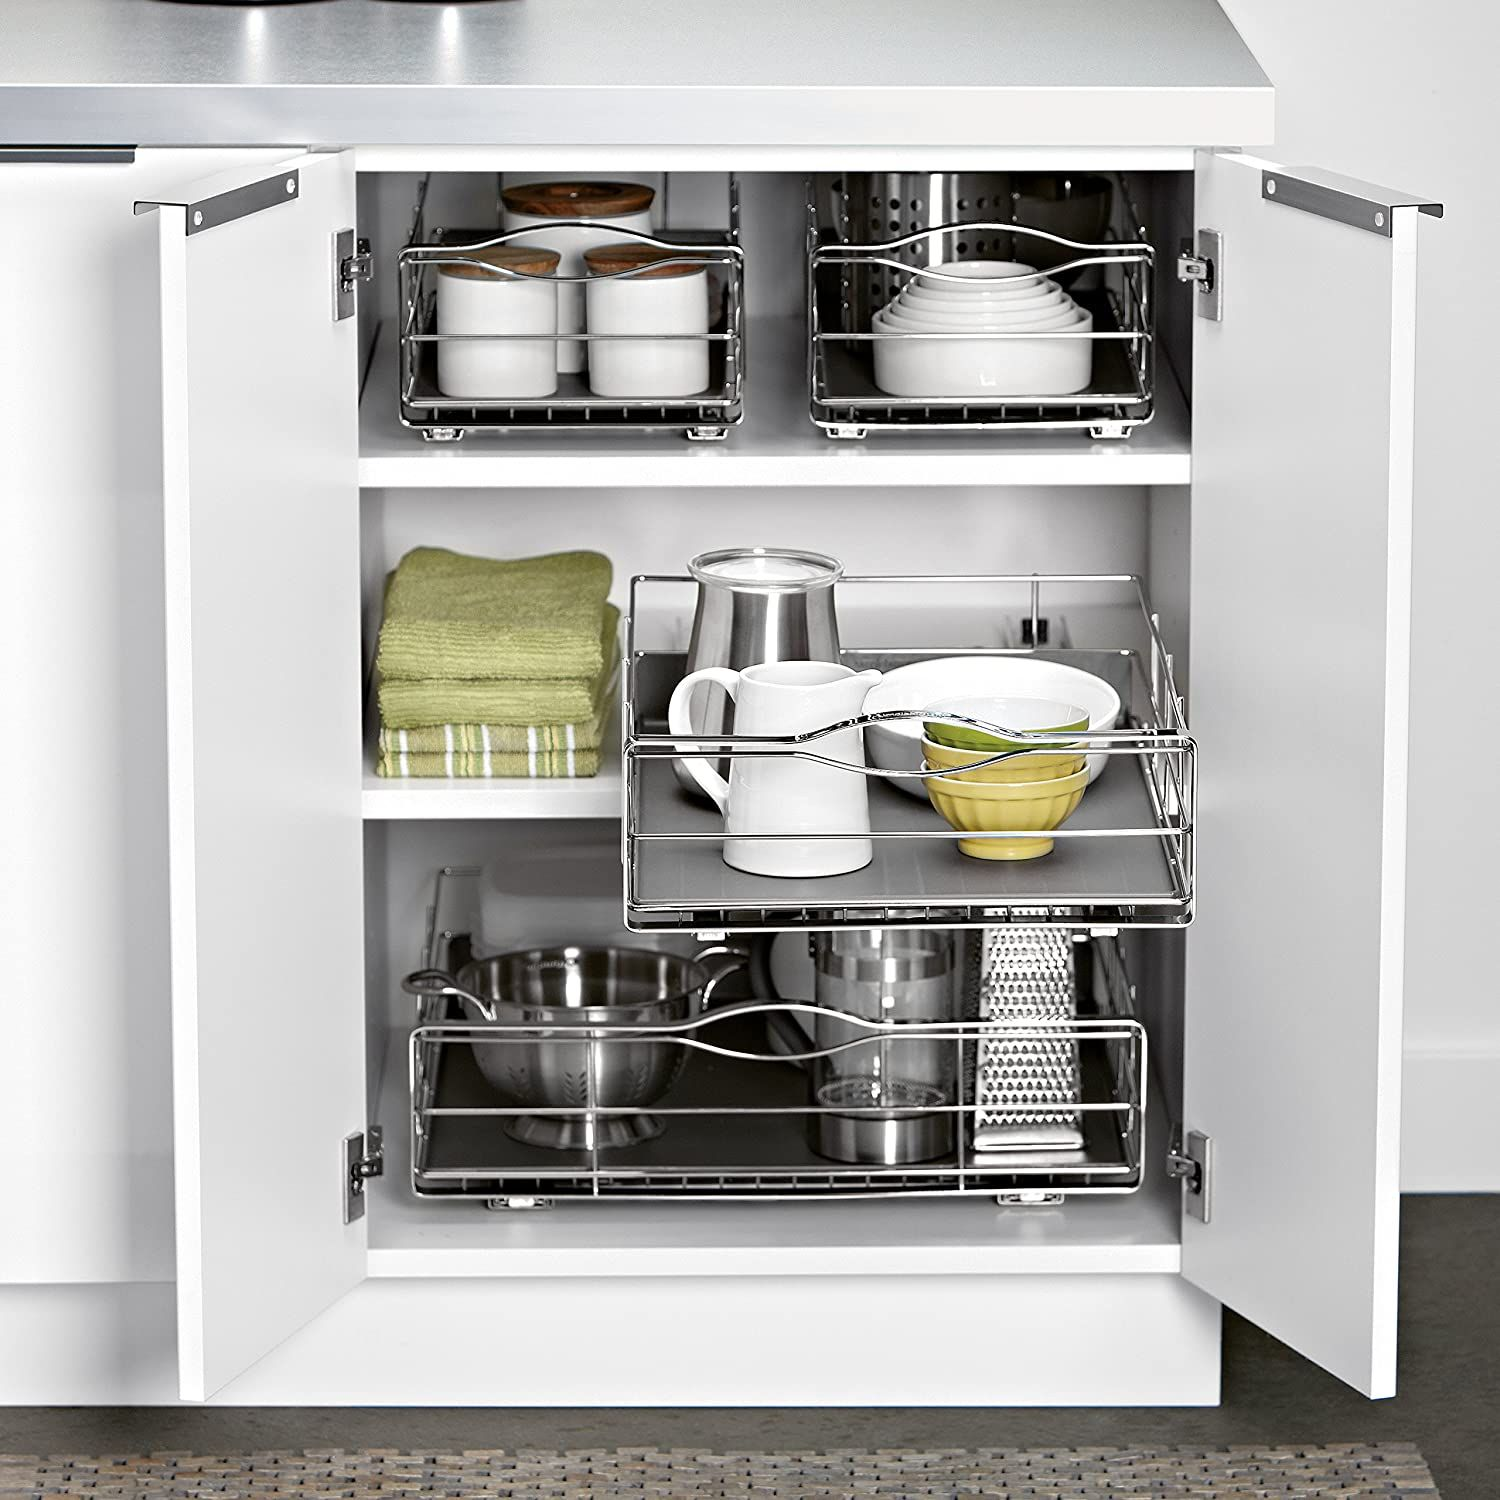 Amazon.com: simplehuman 20 inch Pull-Out Cabinet Organizer ...